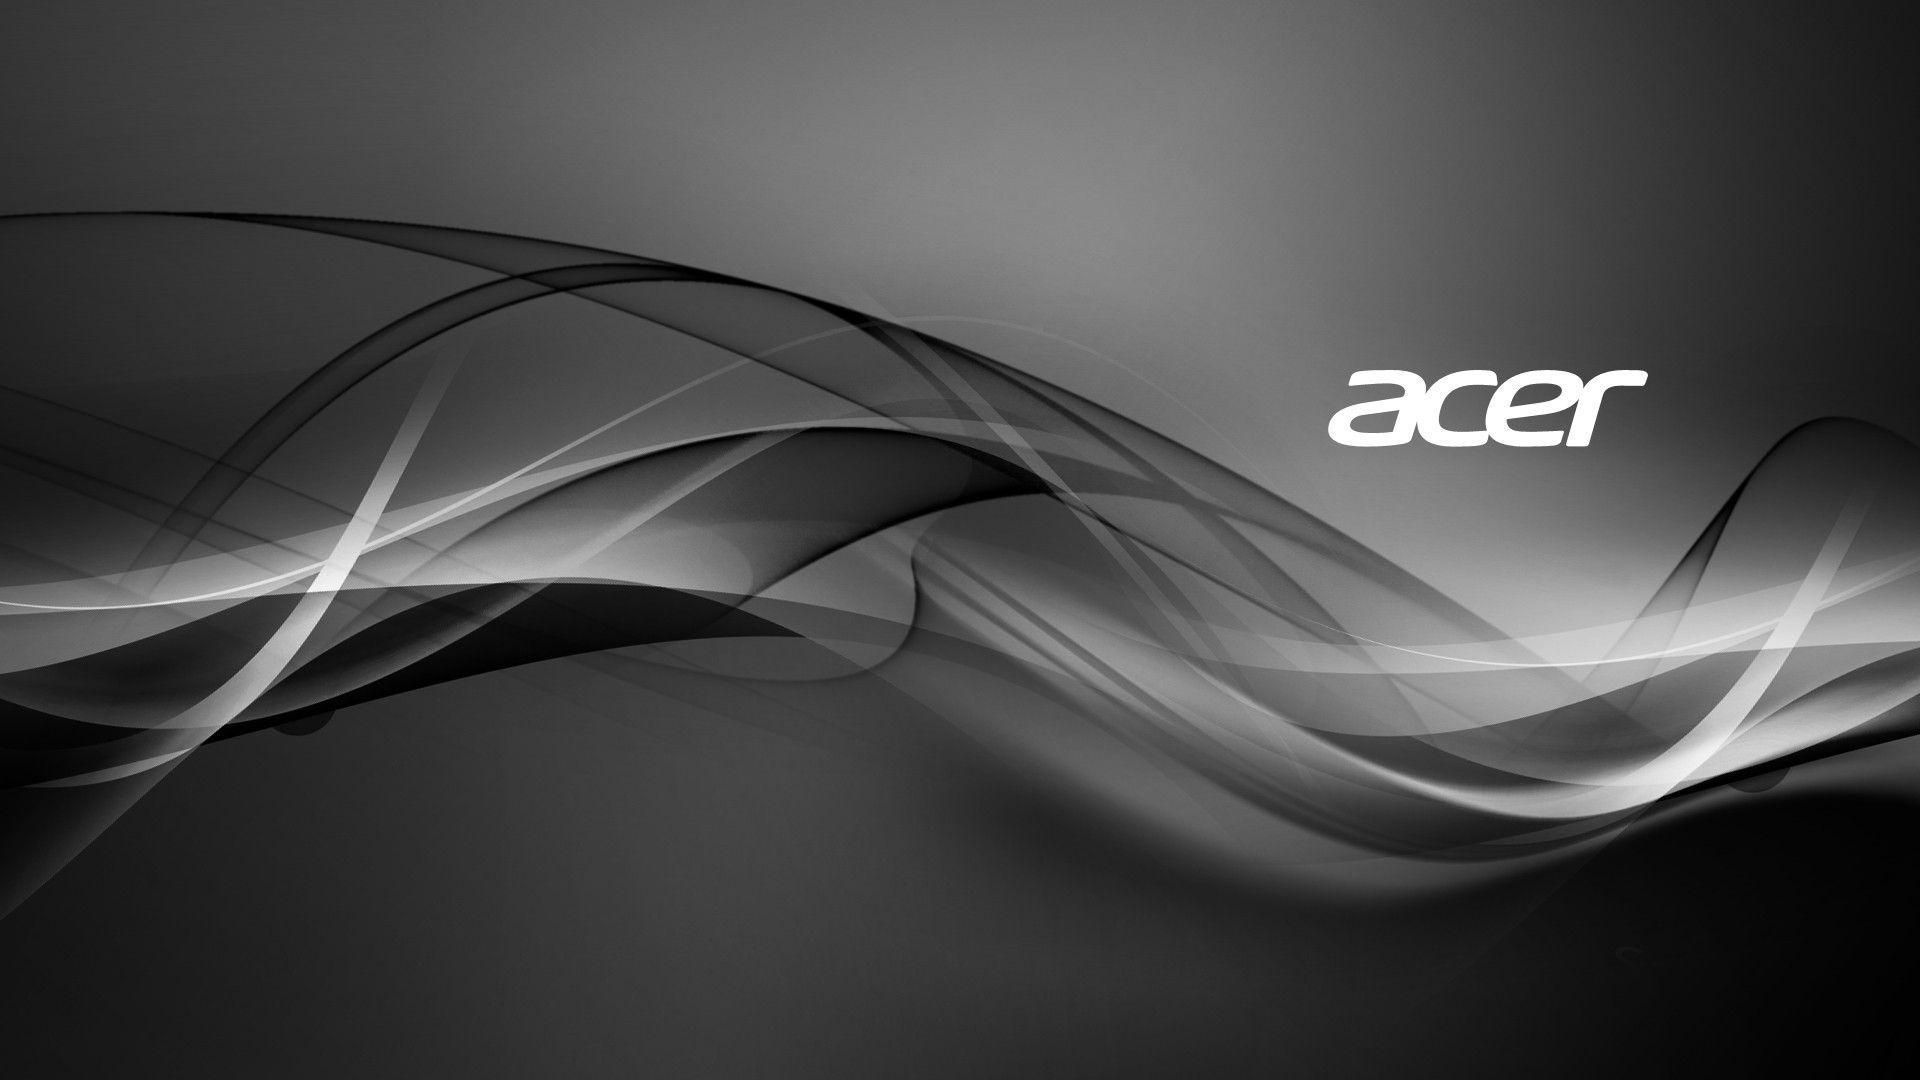 Acer laptop background